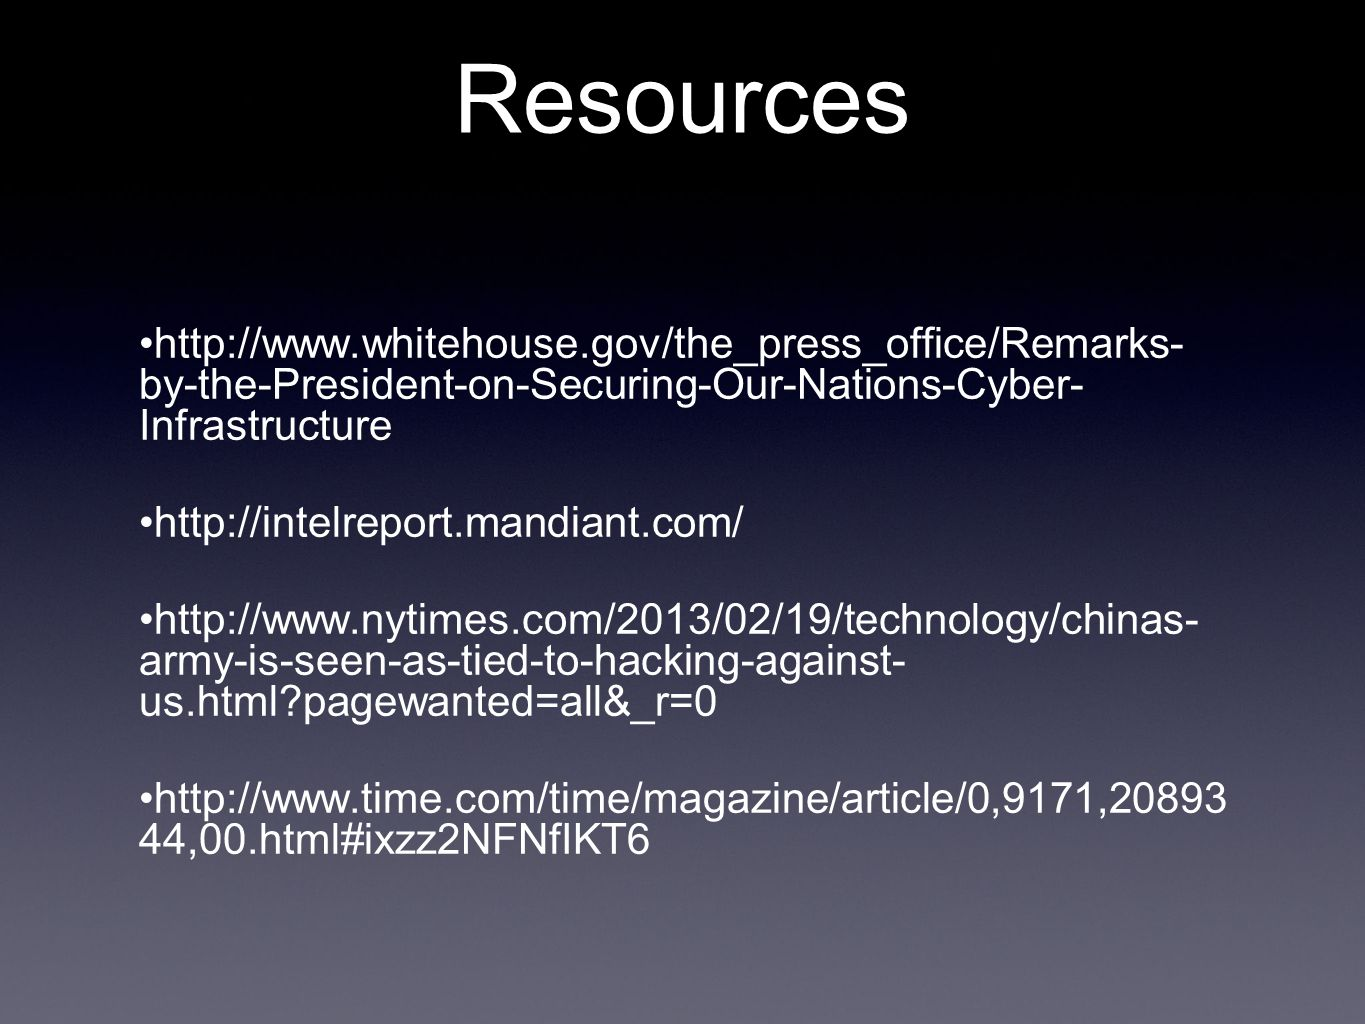 Resources http://www.whitehouse.gov/the_press_office/Remarks- by-the-President-on-Securing-Our-Nations-Cyber- Infrastructure http://intelreport.mandiant.com/ http://www.nytimes.com/2013/02/19/technology/chinas- army-is-seen-as-tied-to-hacking-against- us.html pagewanted=all&_r=0 http://www.time.com/time/magazine/article/0,9171,20893 44,00.html#ixzz2NFNfIKT6